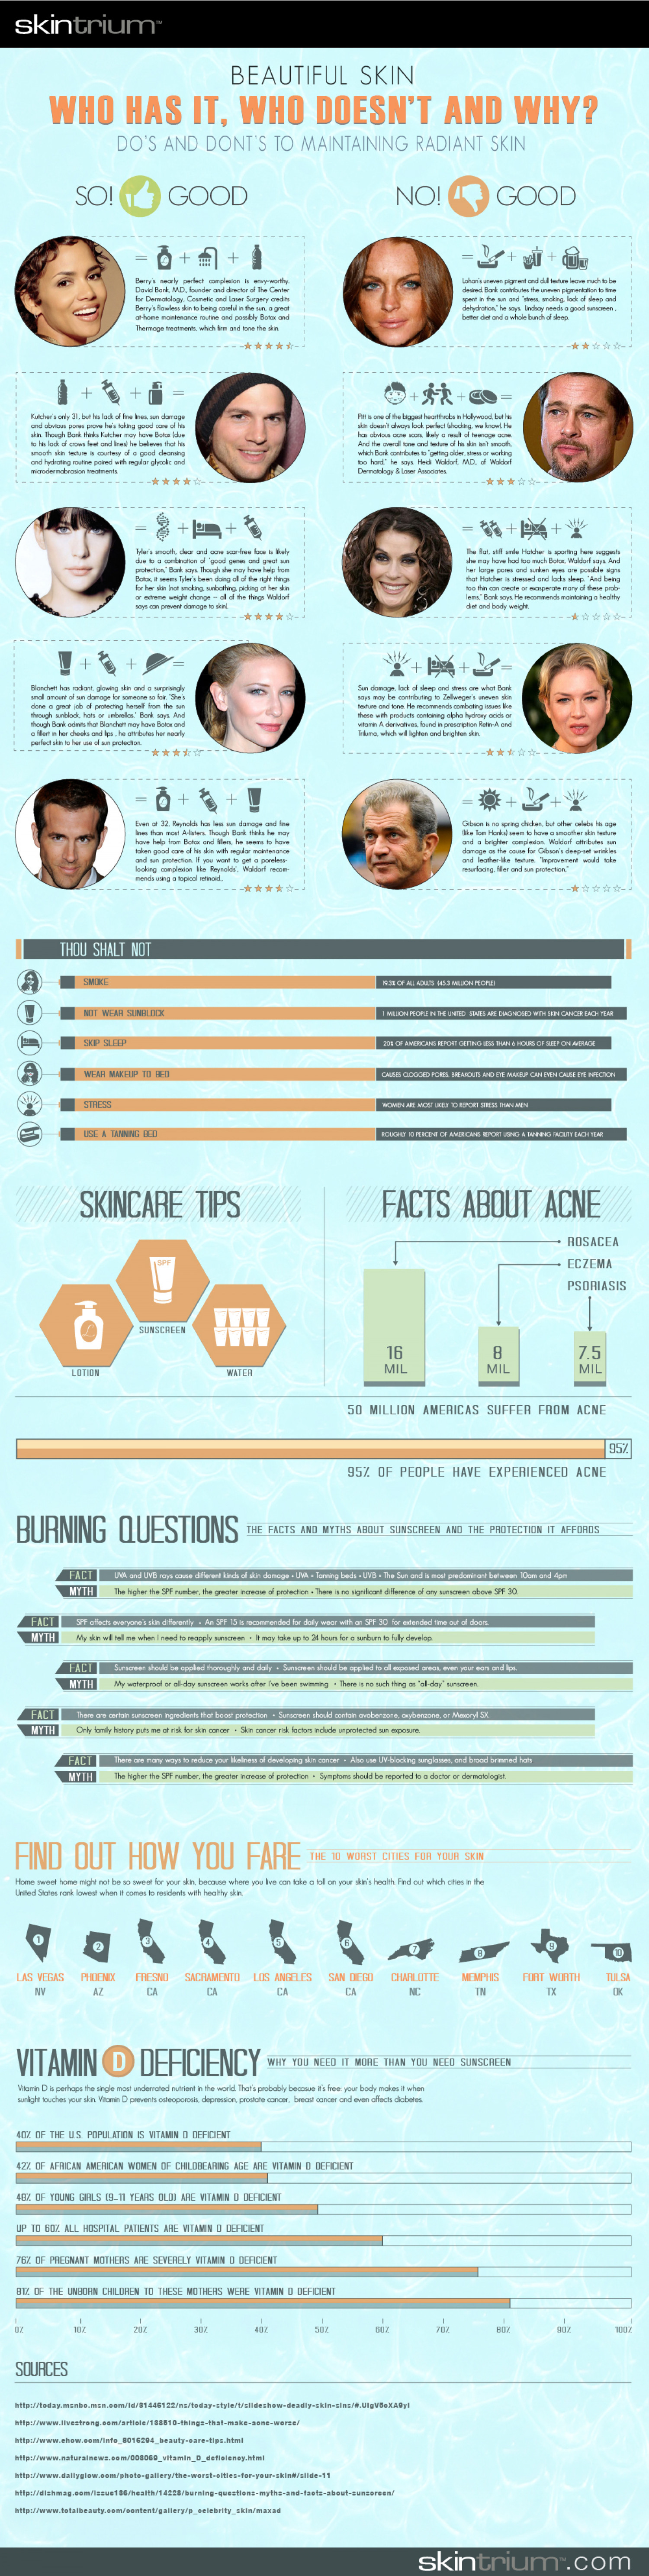 Beautiful Skin:  Who has it, Who doesn't, and Why Infographic